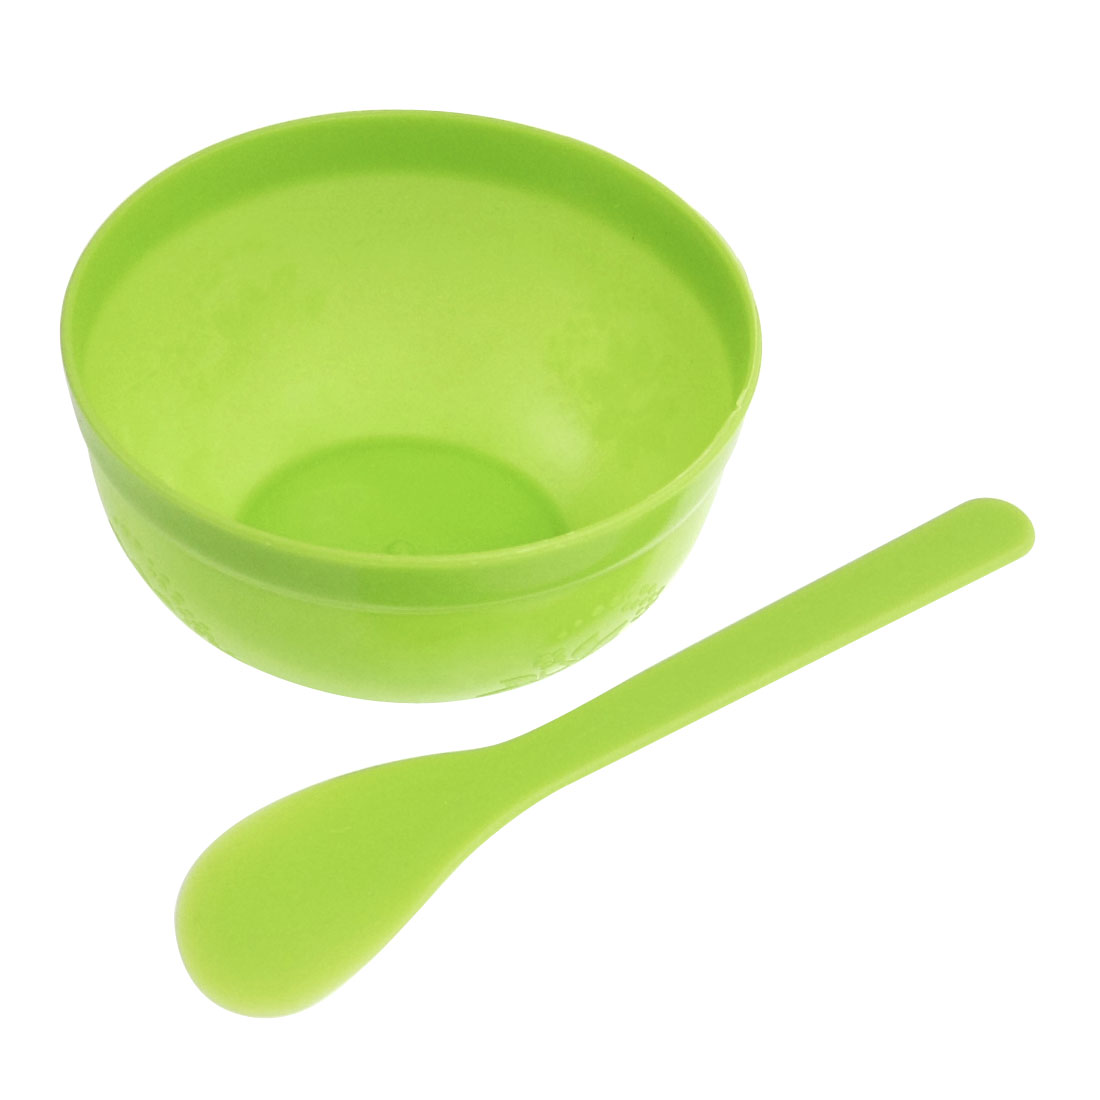 Cosmetic Facial Face Skin Care Plastic Mask Bowl Stick Set Green